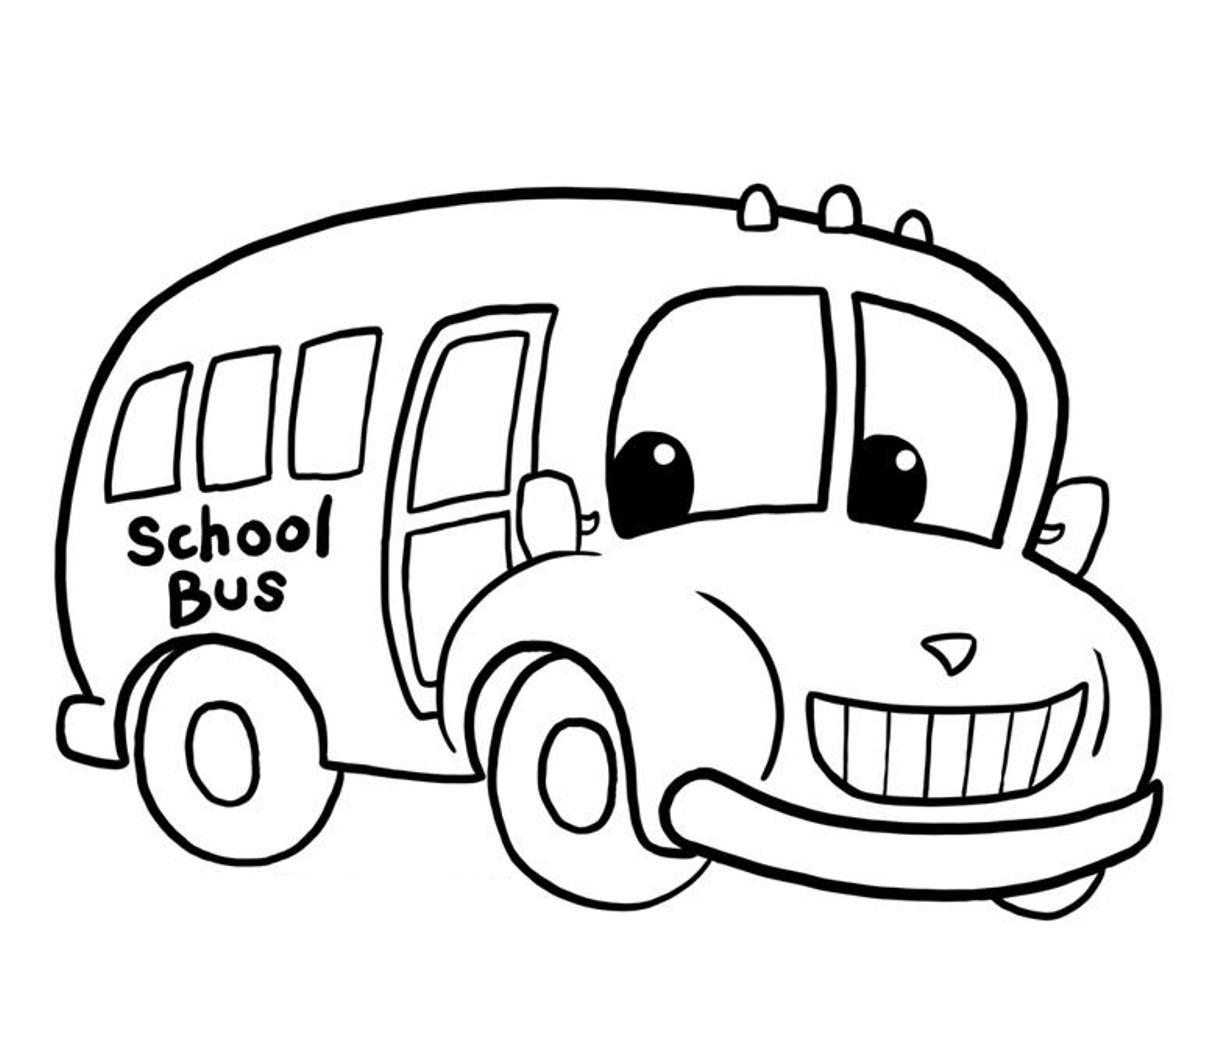 Bus Cartoon Drawing